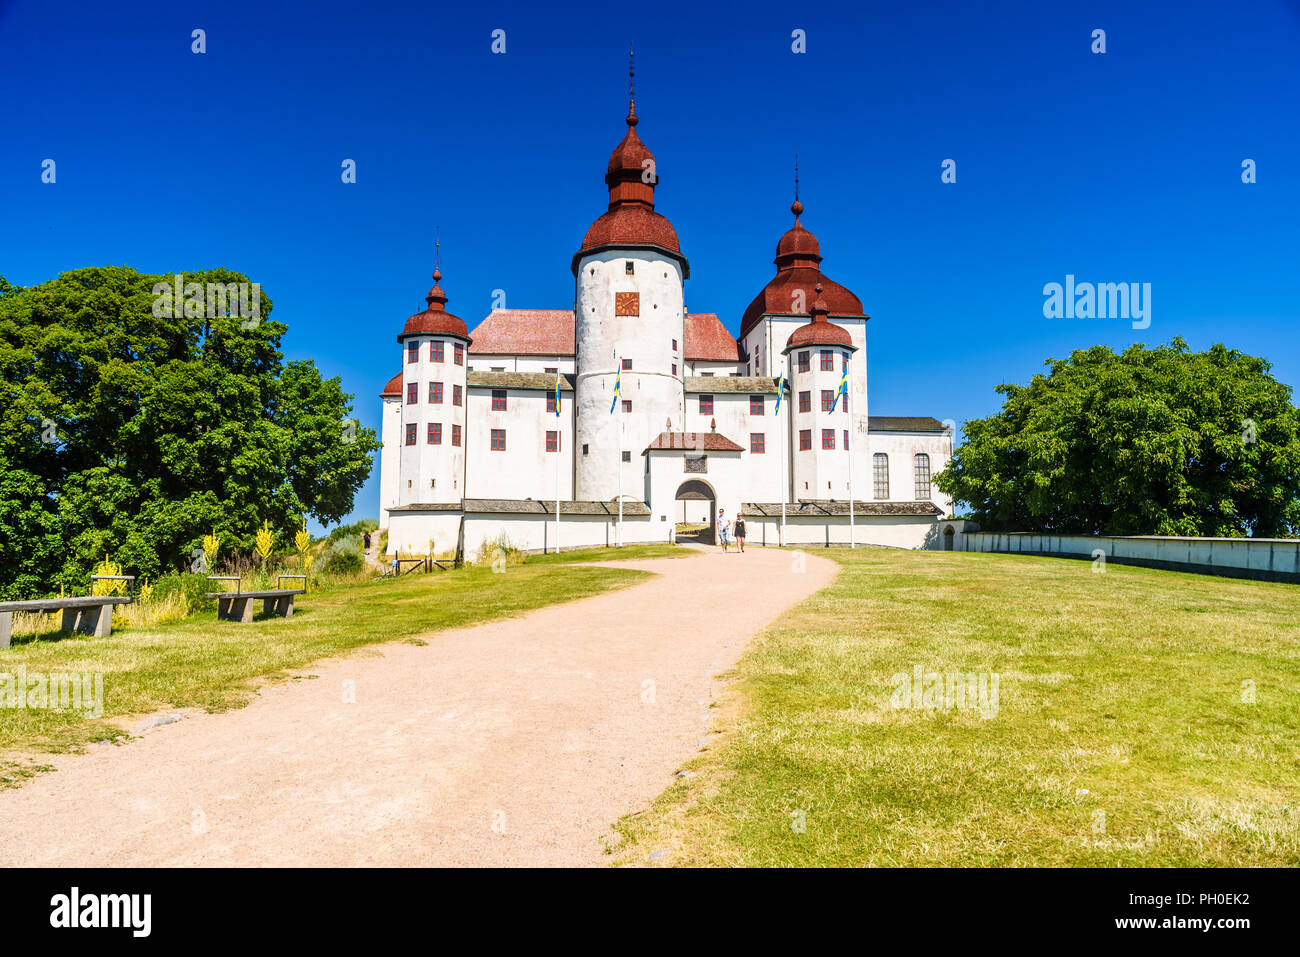 lidkoping schweden 4 juli 2018 lacko schloss ist. Black Bedroom Furniture Sets. Home Design Ideas